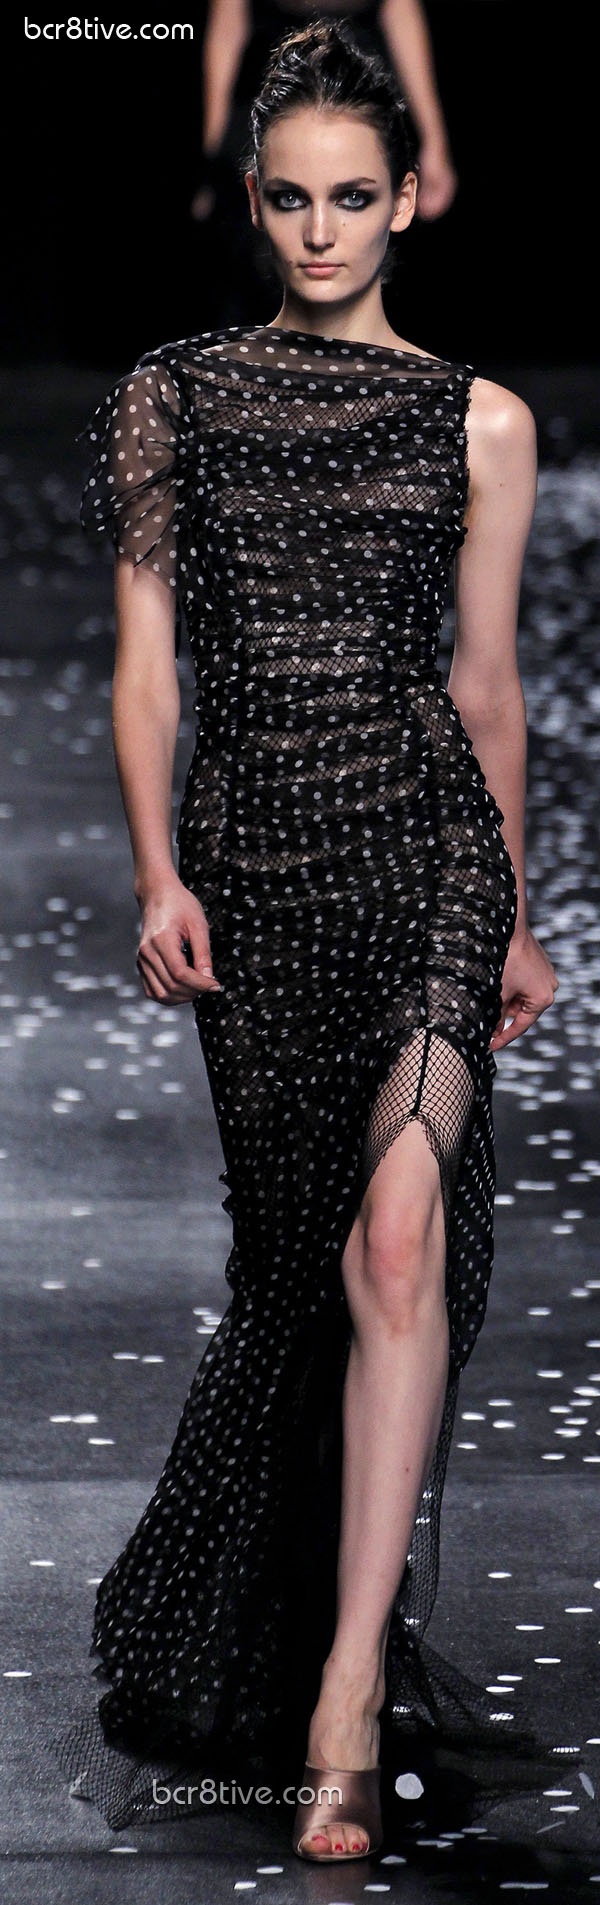 Puntos                                                      My Favorites from the Nina Ricci Spring Summer 2013 Ready To Wear Collection